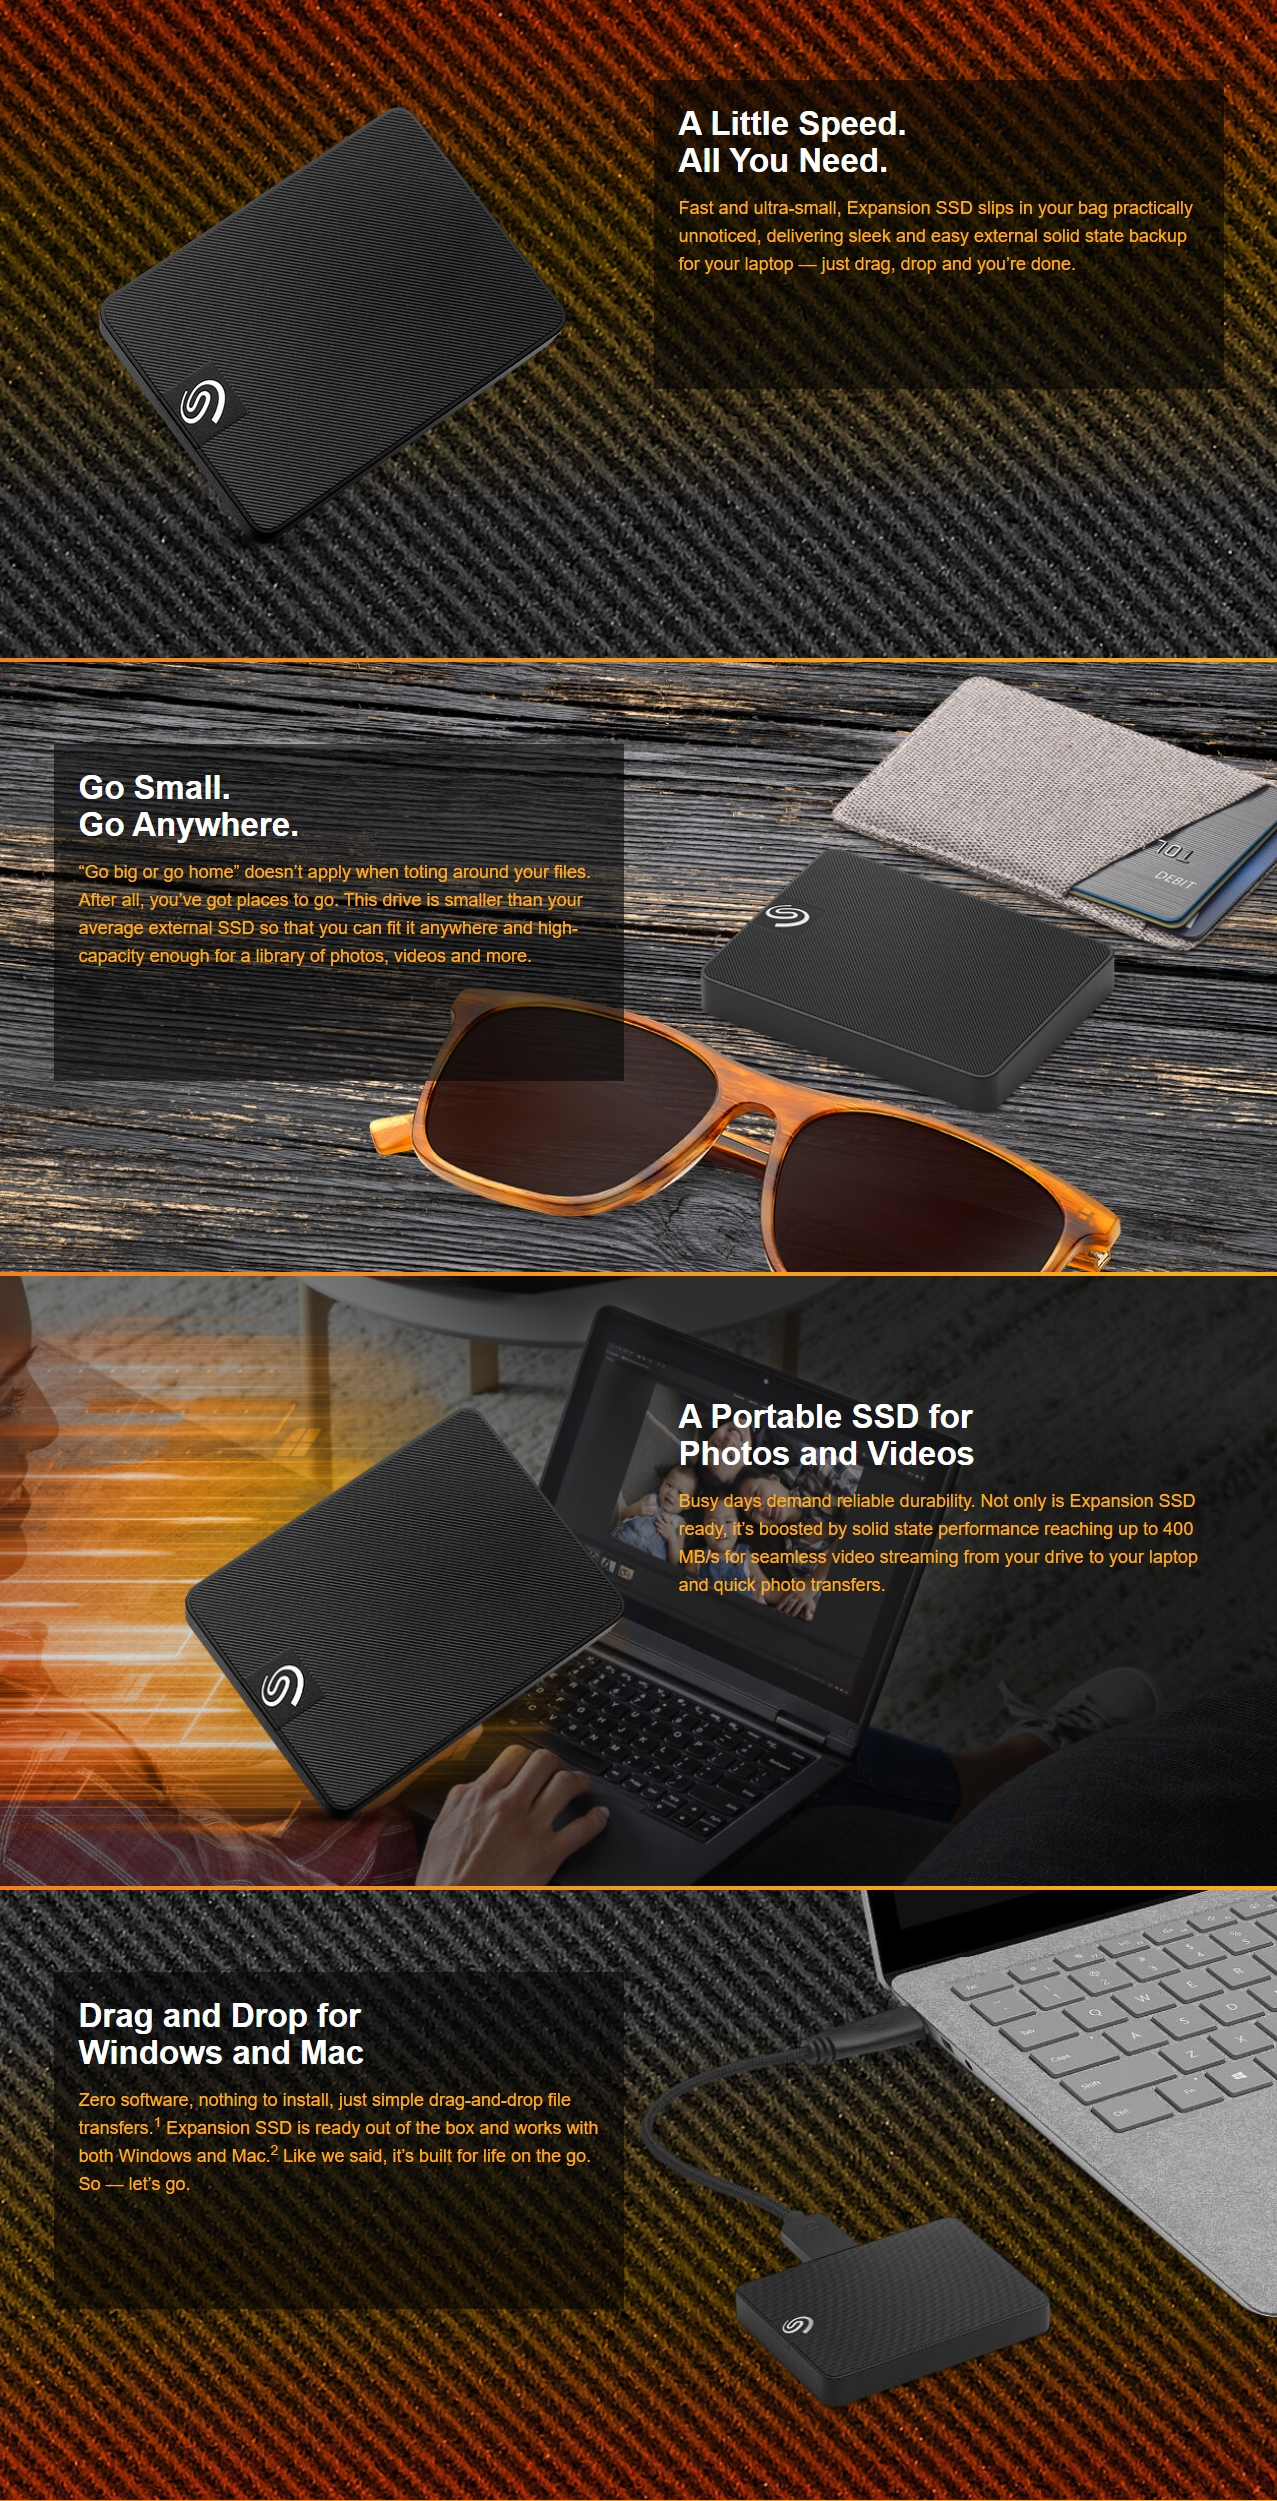 A large marketing image providing additional information about the product Seagate Expansion 500GB External SSD - Additional alt info not provided